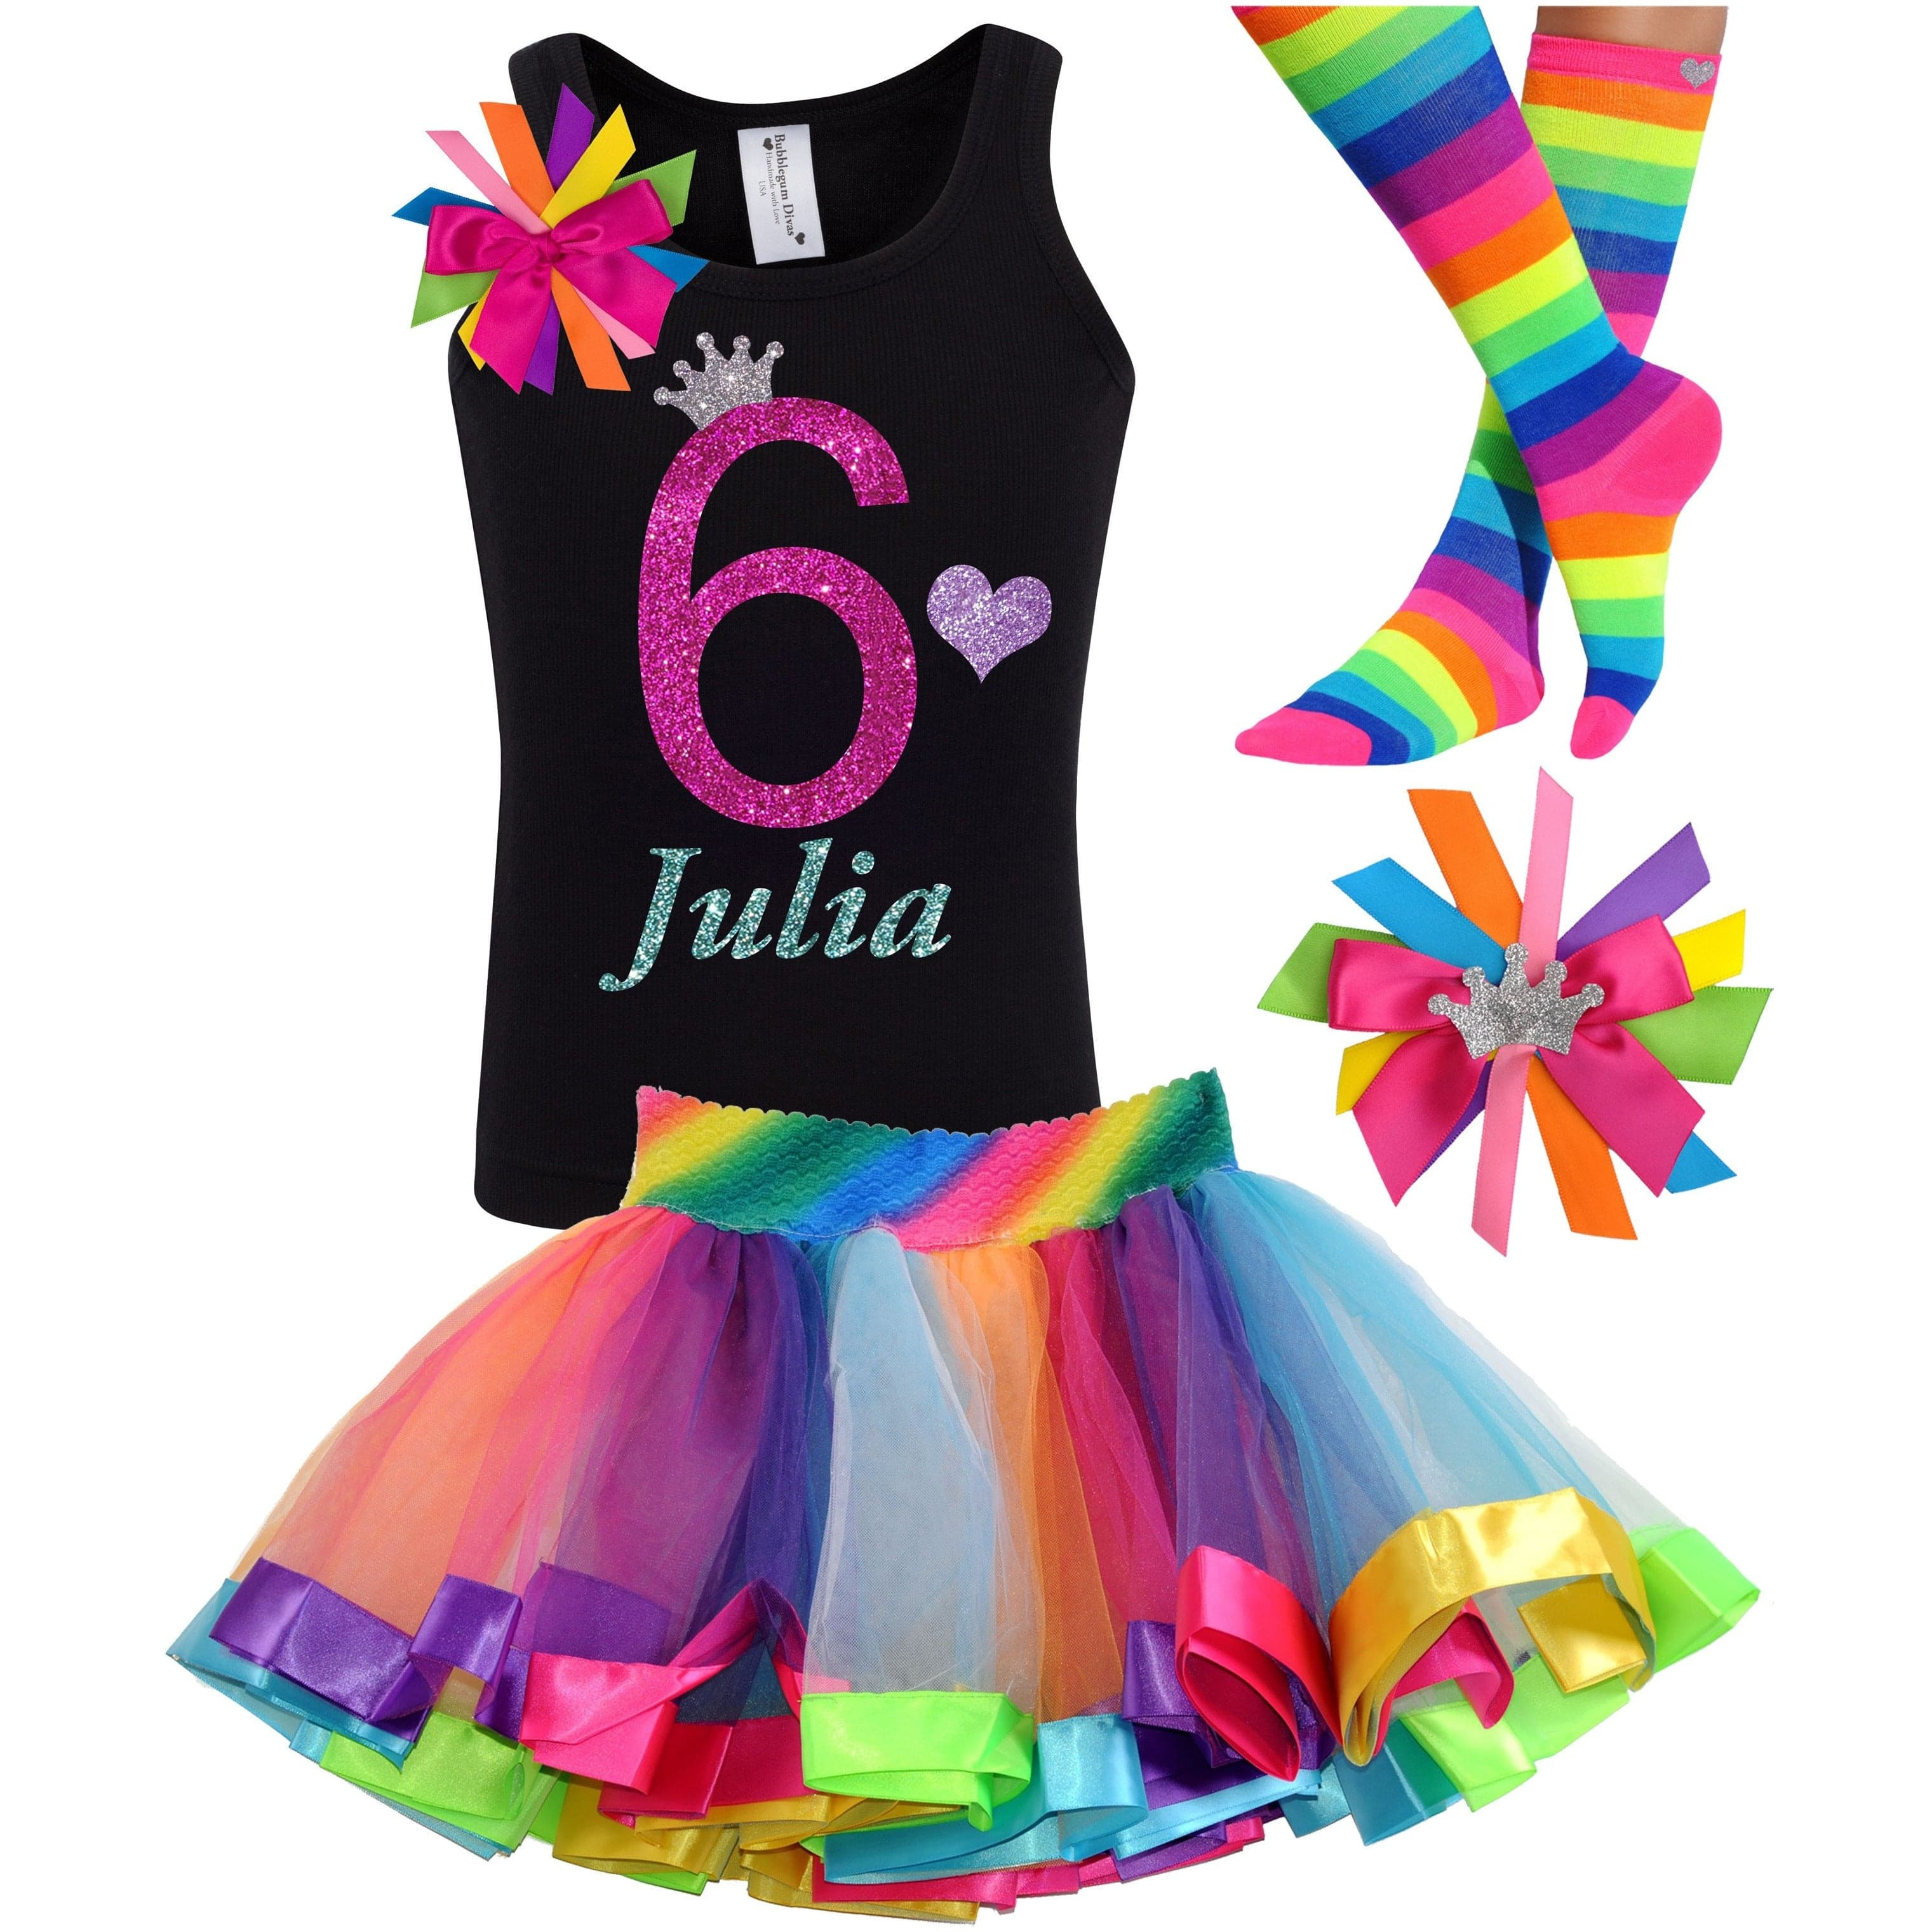 6th Birthday Shirt Rainbow Tutu Girls Party Outfit 4PC Set - Outfit - Bubblegum Divas Store